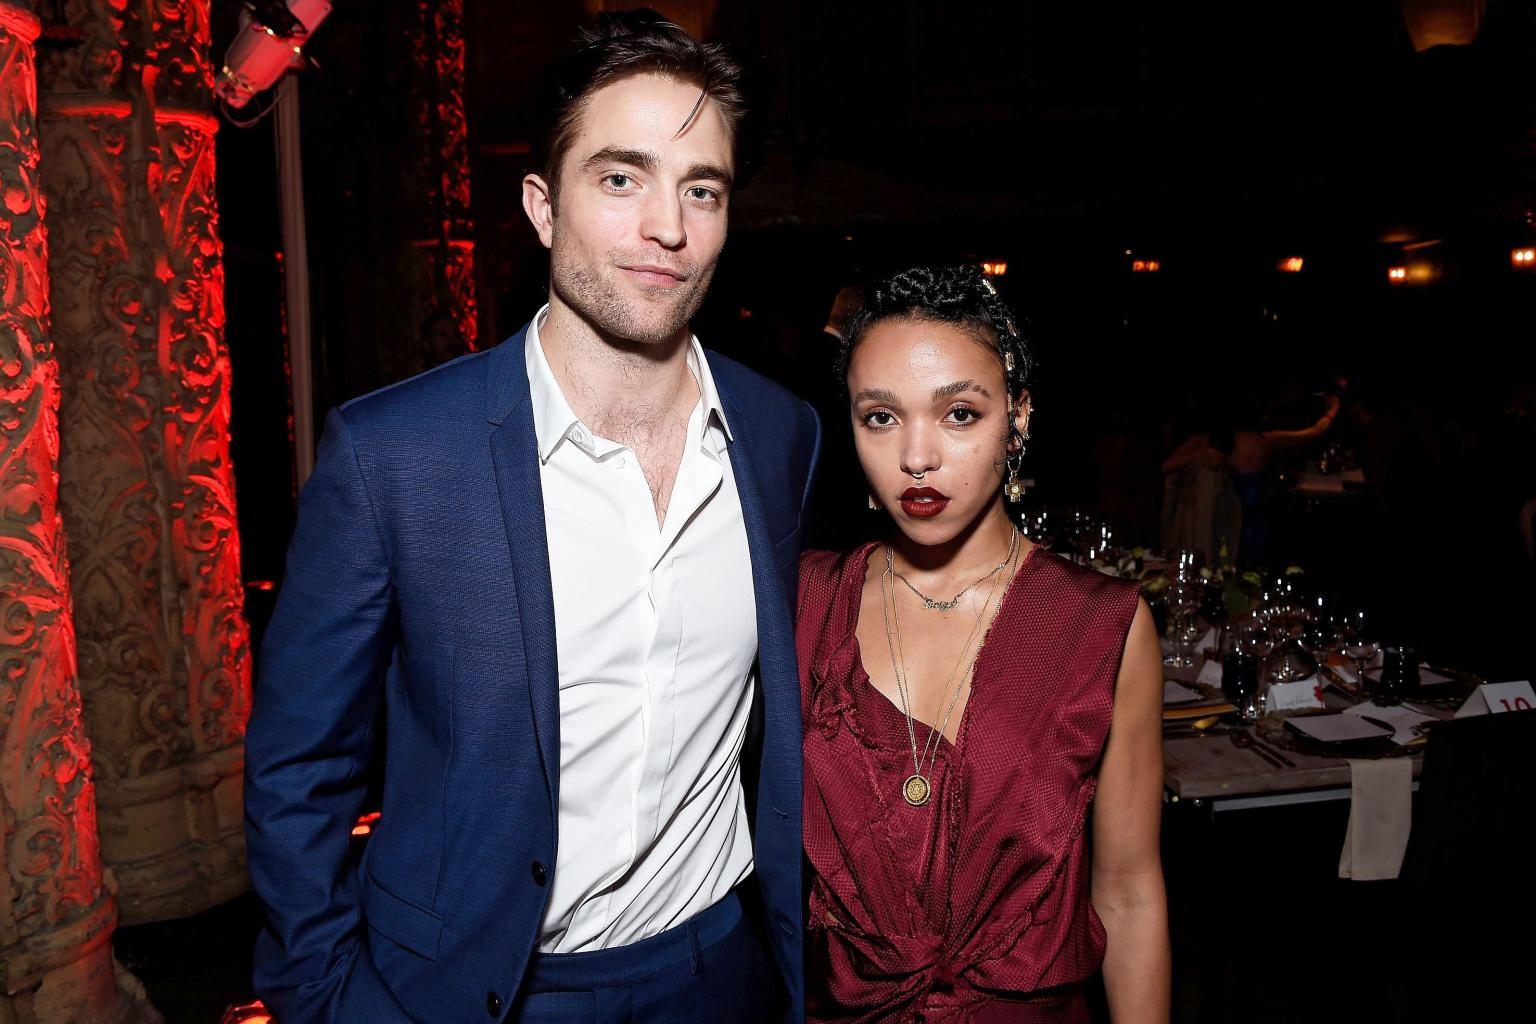 Robert Pattinson Says He and Fka twigs Are 'Kind Of' Engaged in New Interview 2 Years After He Popped the Question